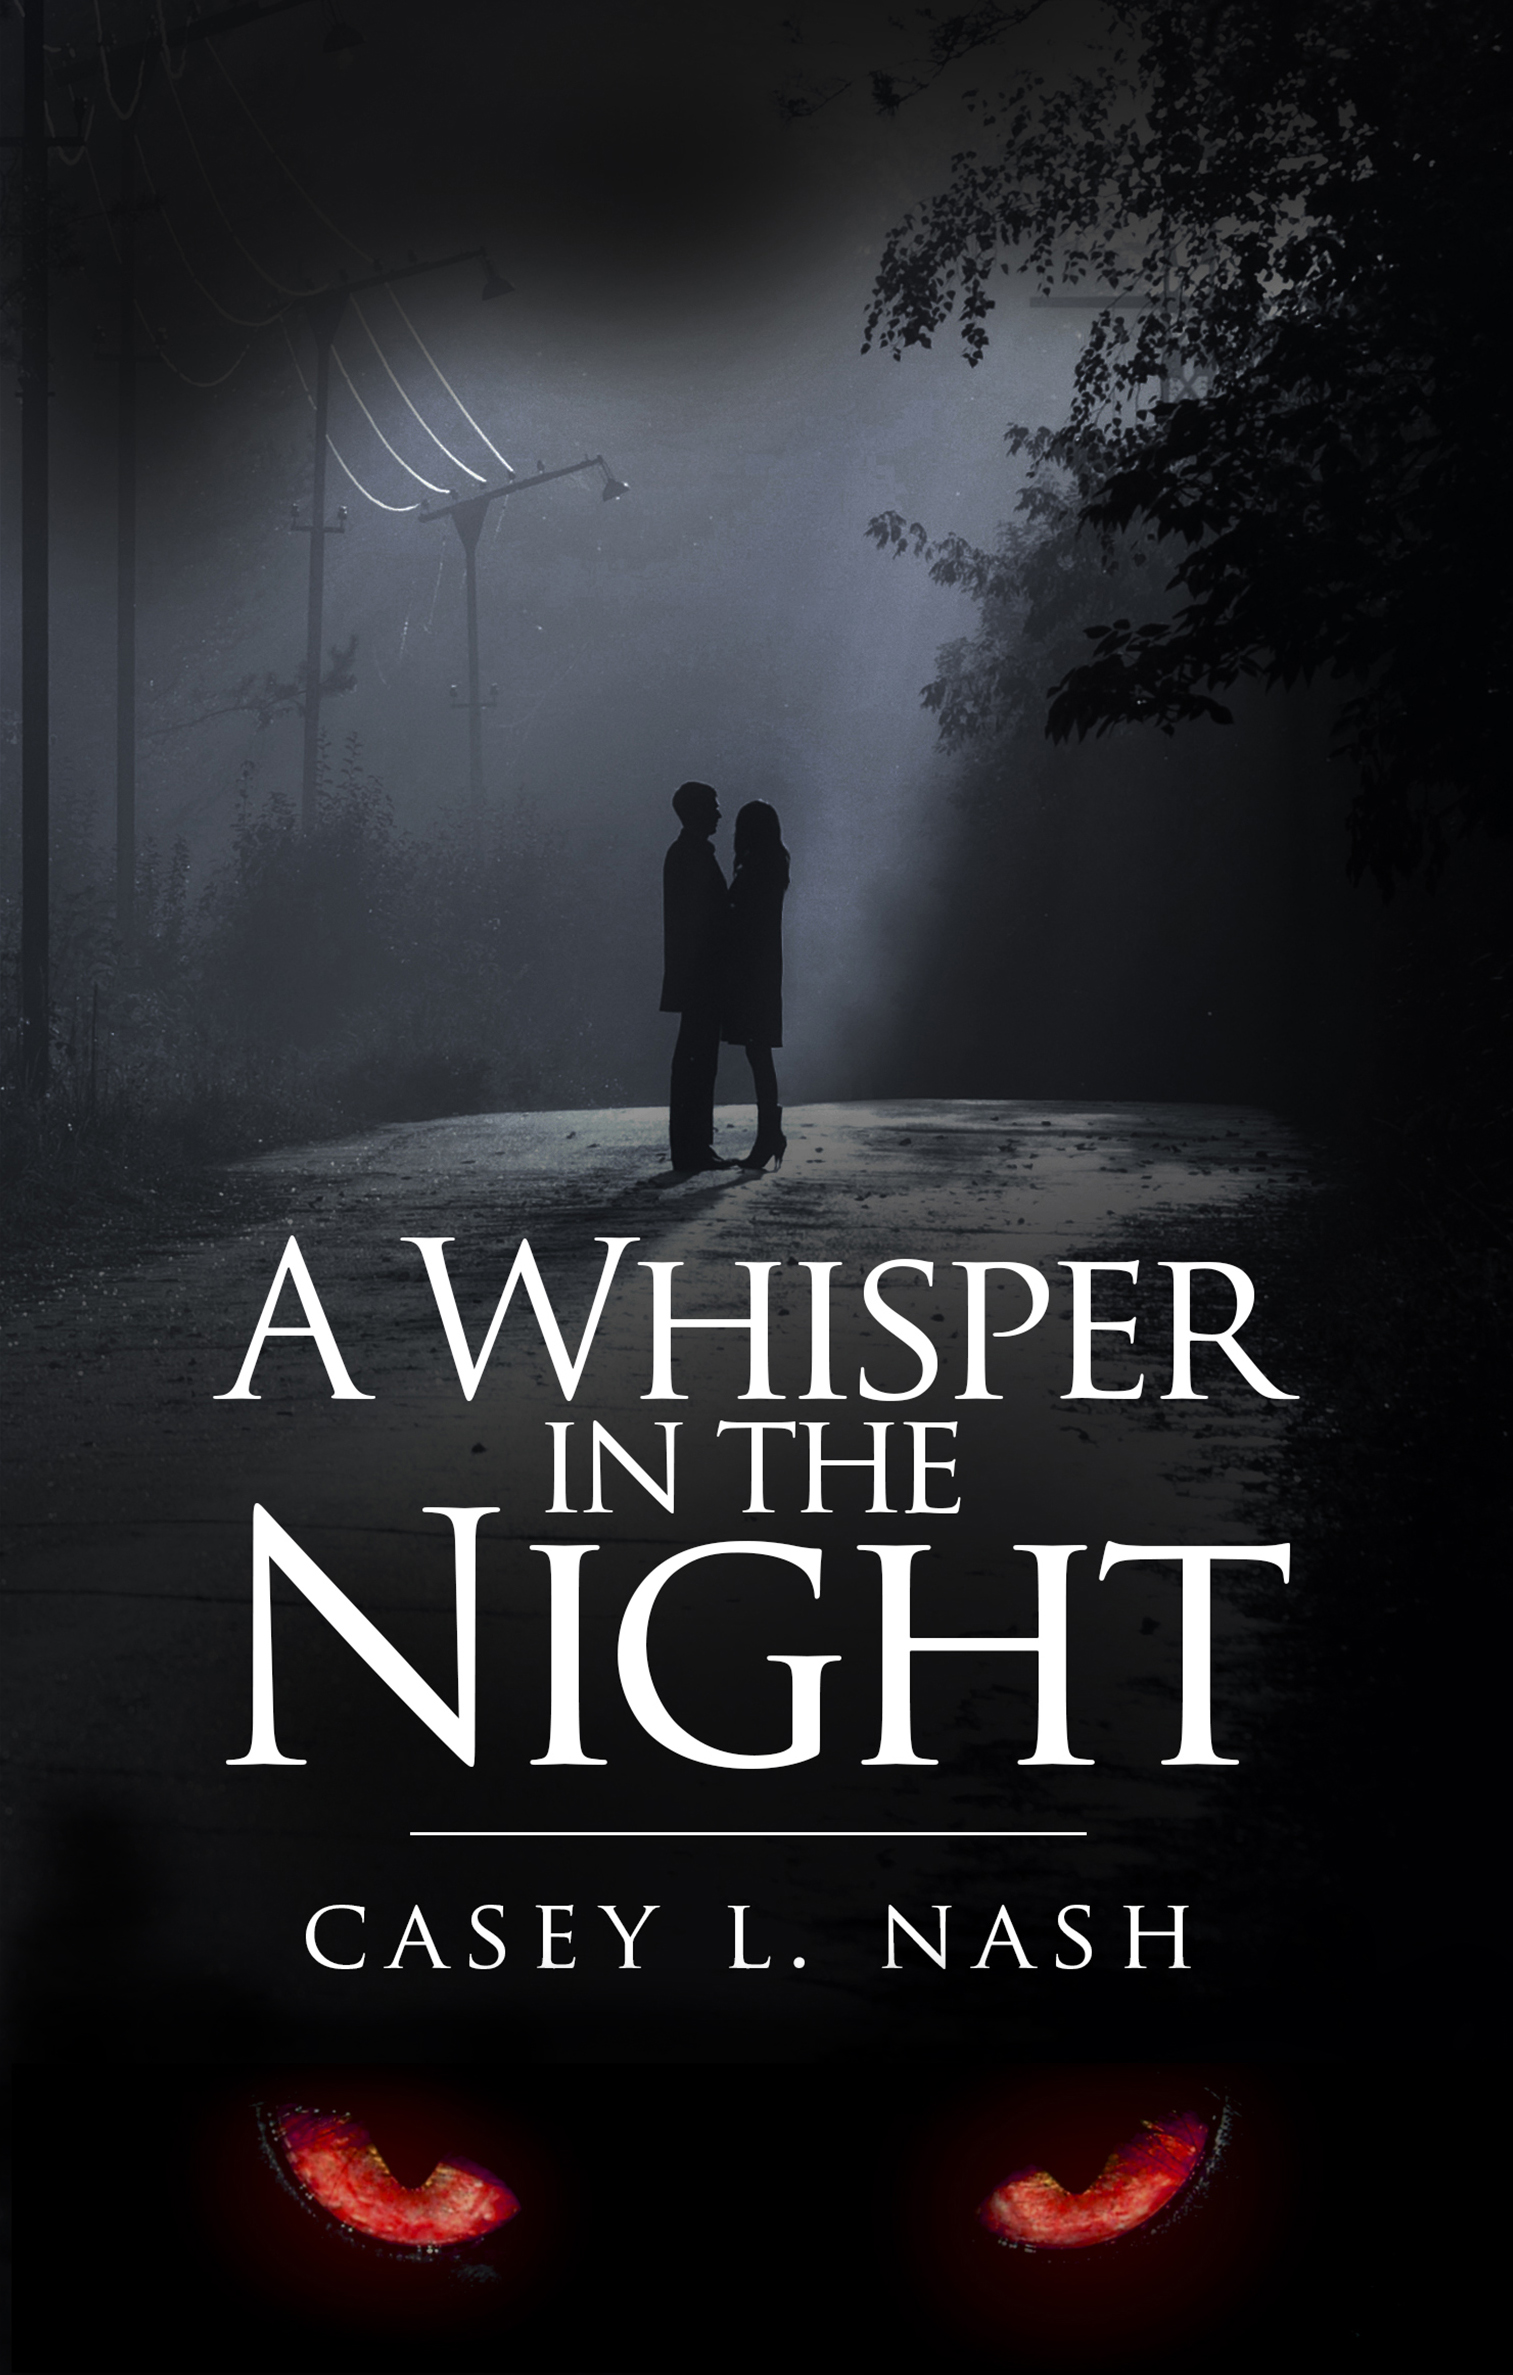 A Whisper in the Night